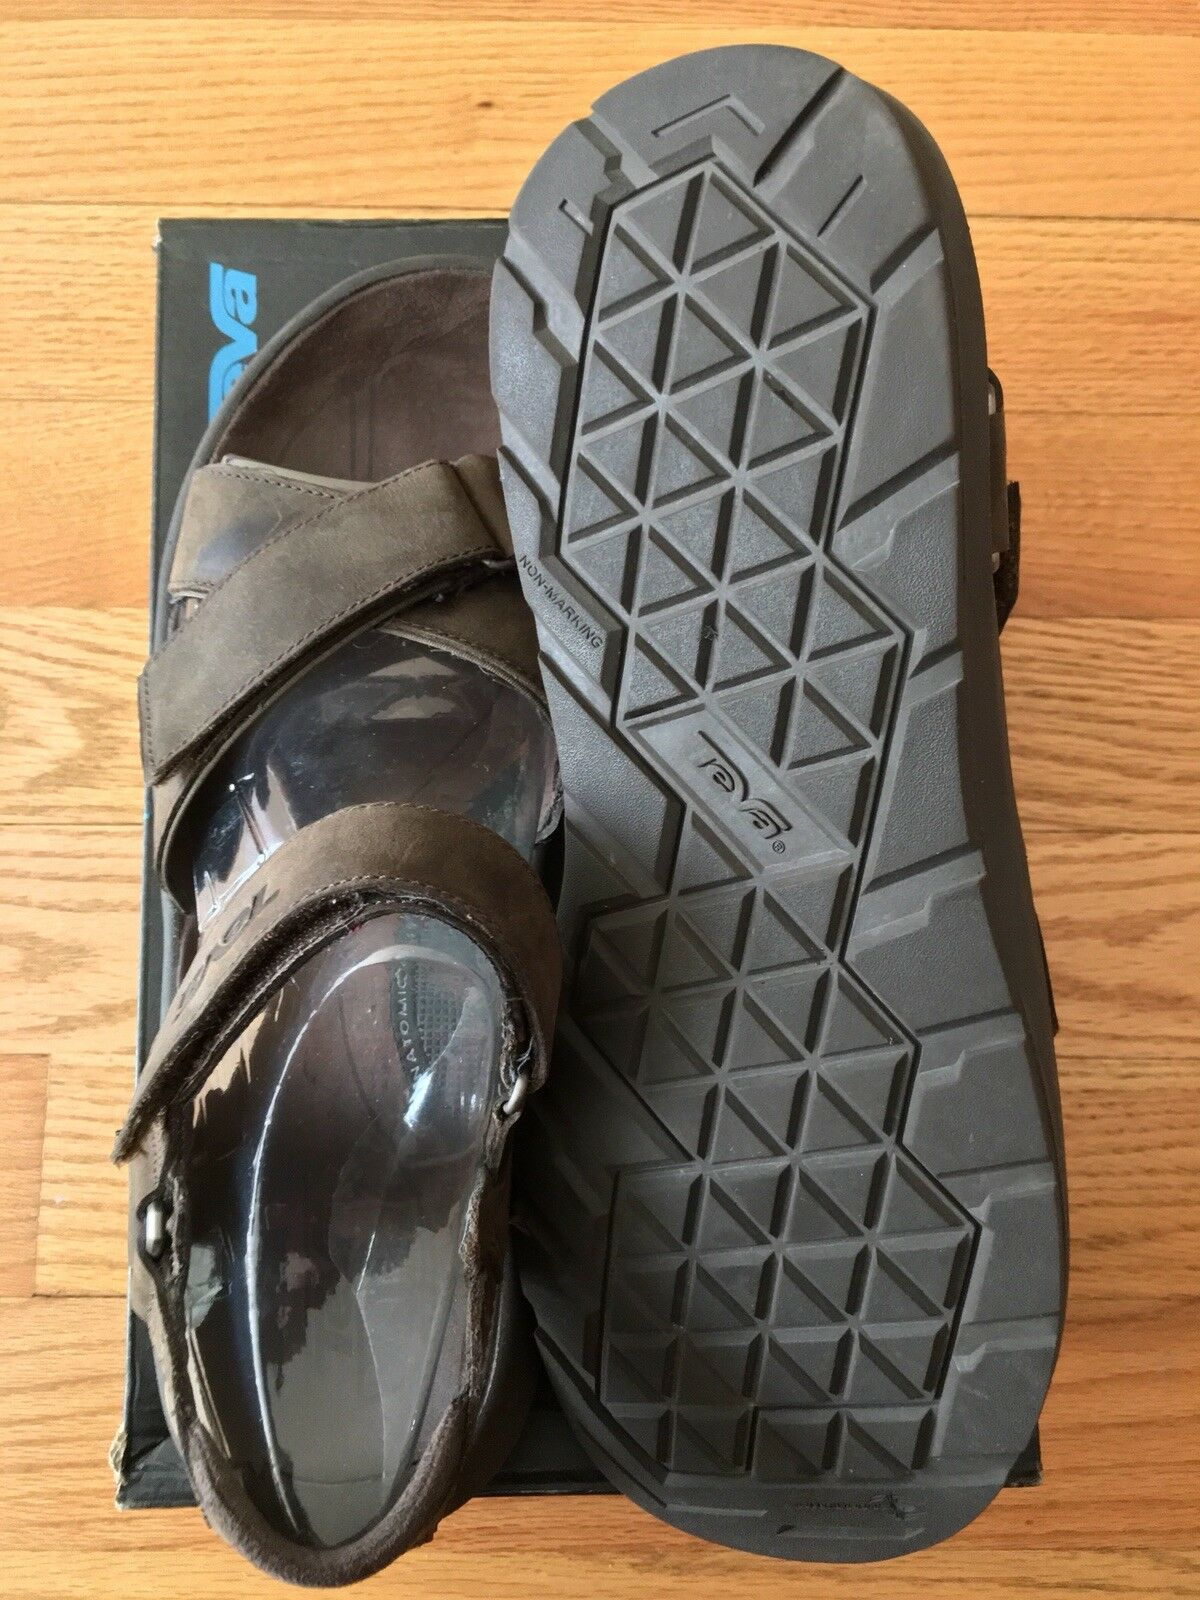 Teva Mens Berkeley Sandal US Size 13 13 13 753503